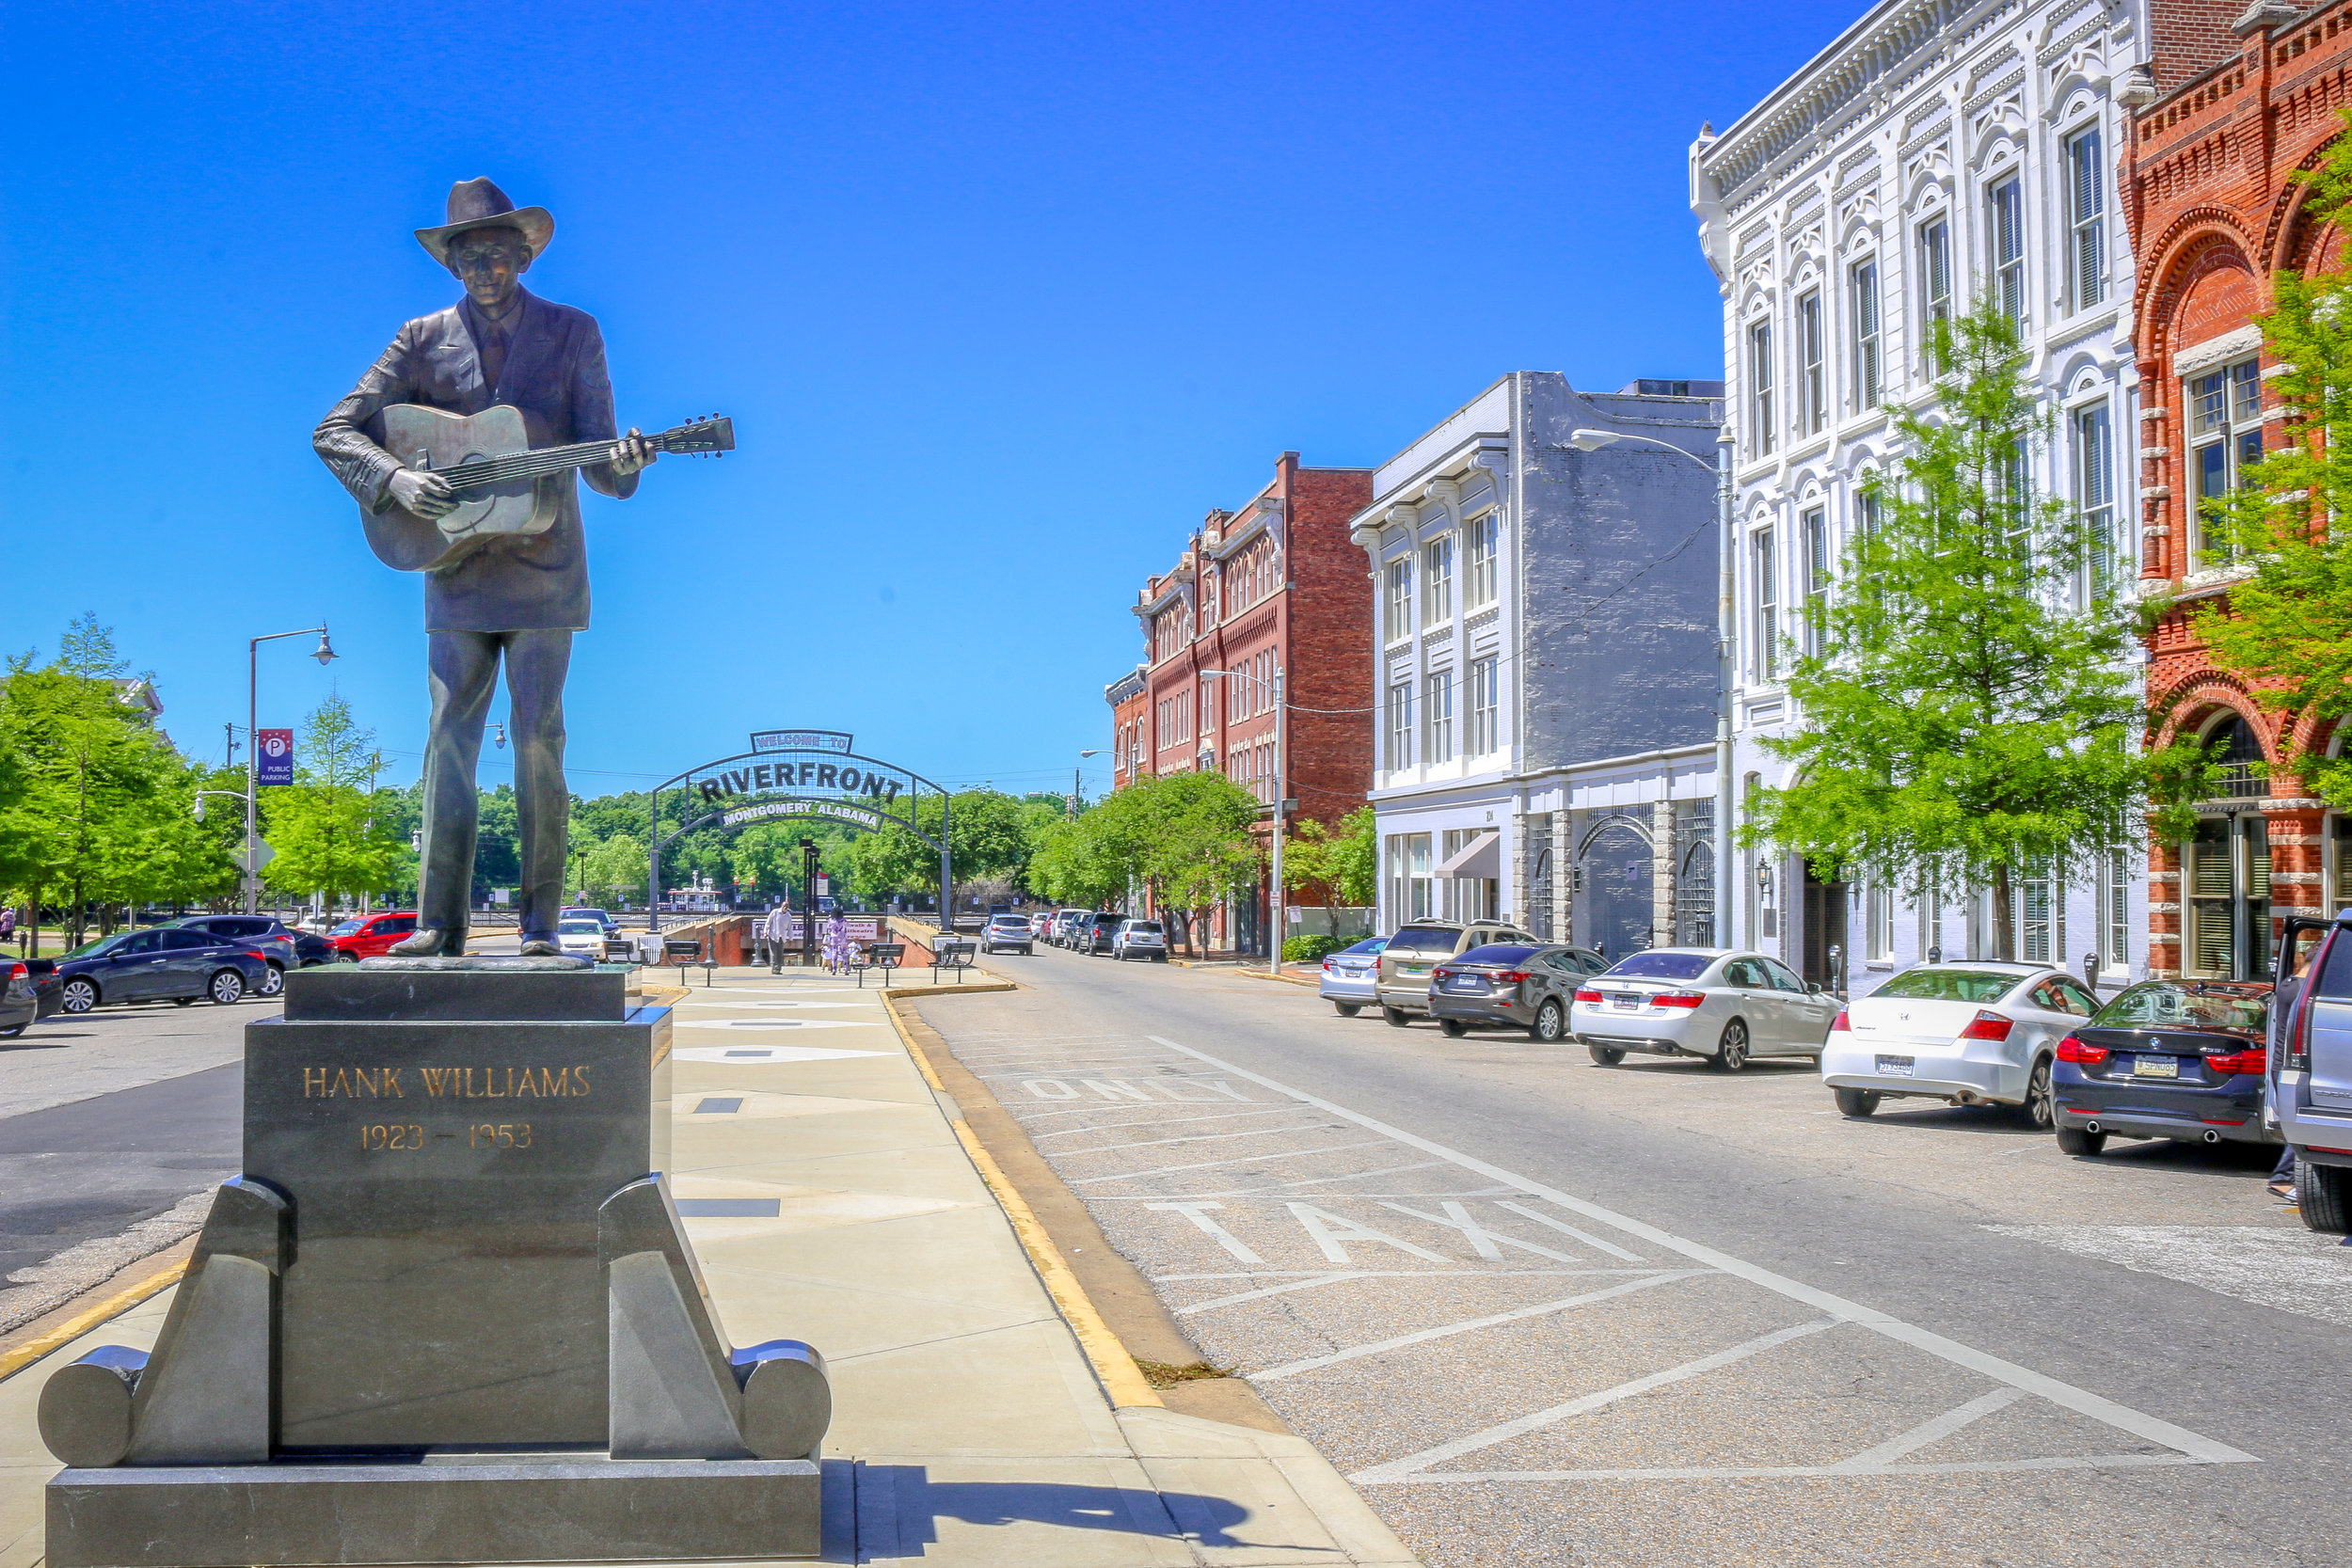 Hank Williams in Montgomery